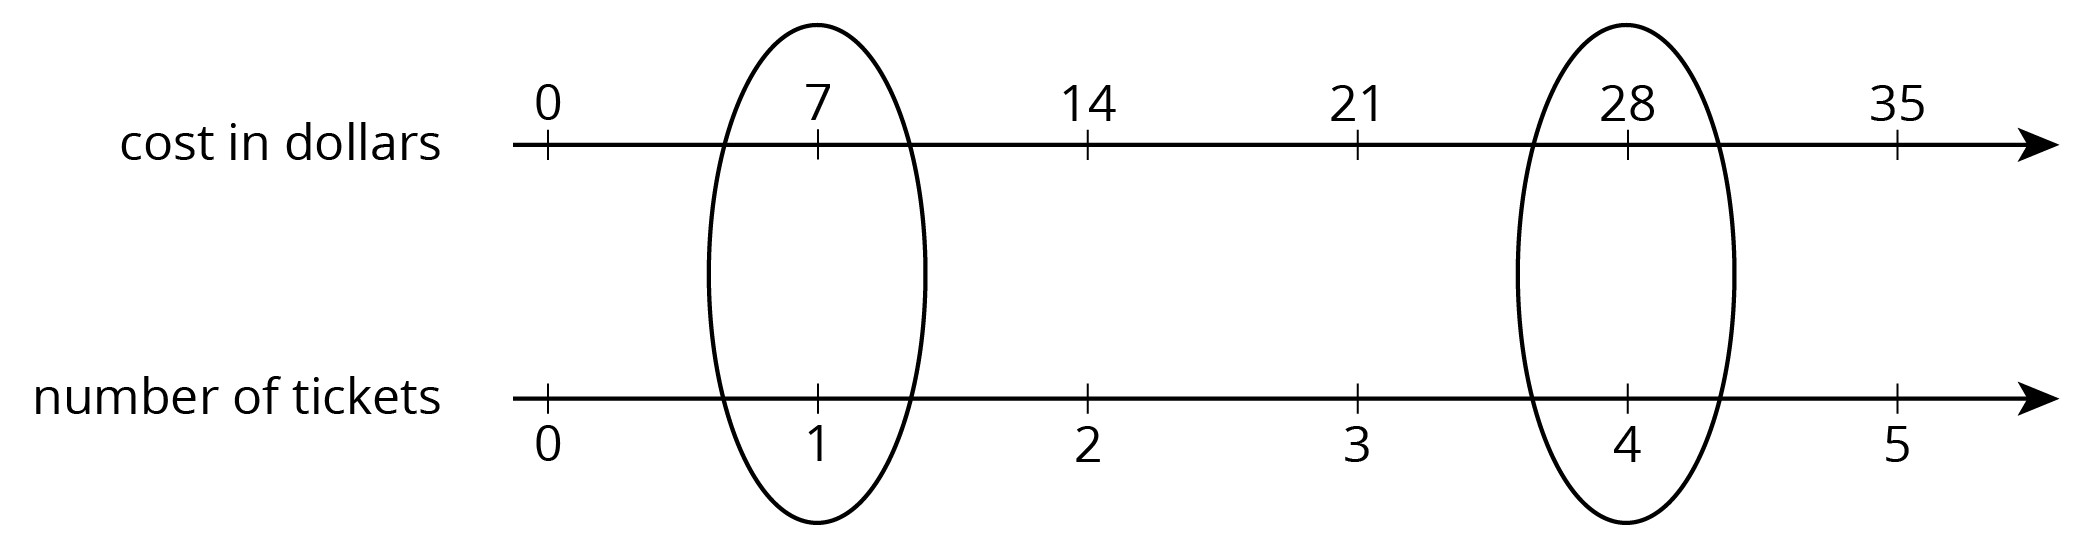 """A double number line with 6 evenly spaced tick marks. The top number line is labeled ""cost in dollars"" and the numbers  0, 7, 14, 21, 28, and 35 are indicated. The bottom number line is labeled ""number of tickets"" and the numbers  0, 1, 2, 3, 4, and 5 are indicated. There is a circle around the numbers 7 and 1 and a second circle around 28 and 4."""